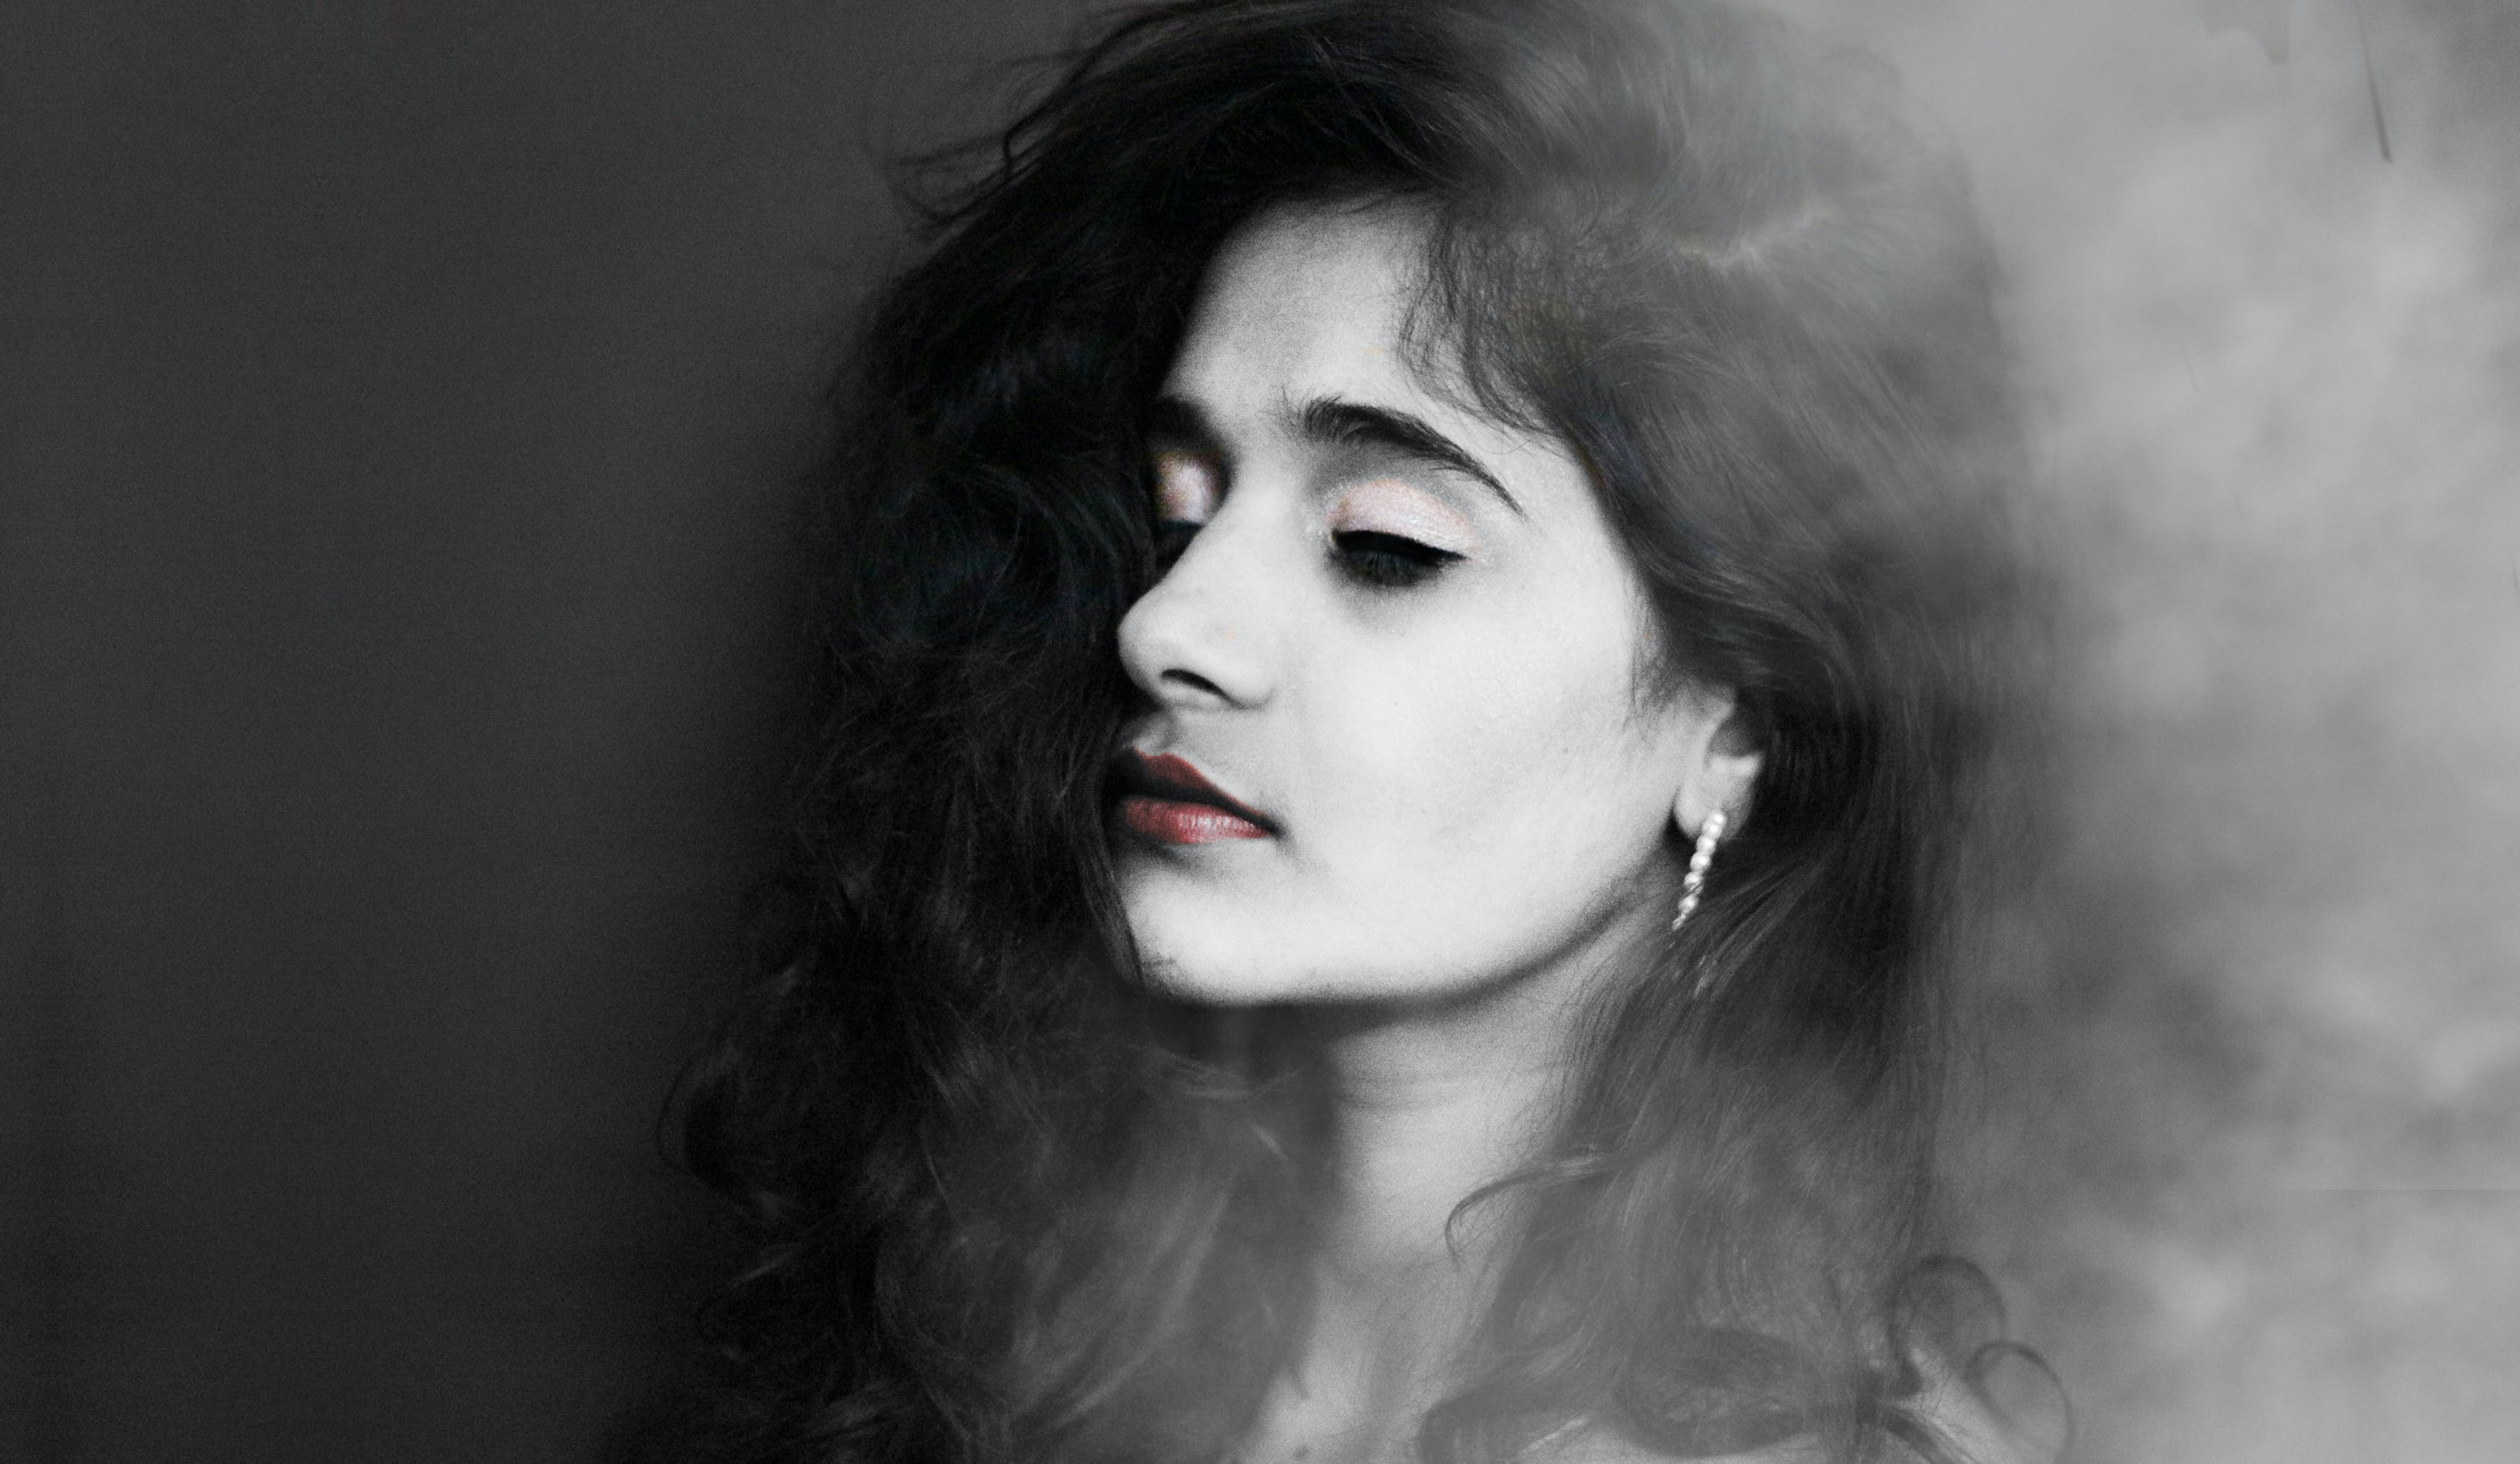 Grayscale Photography of Woman With Red Lipstick Wearing Hoop Earrings